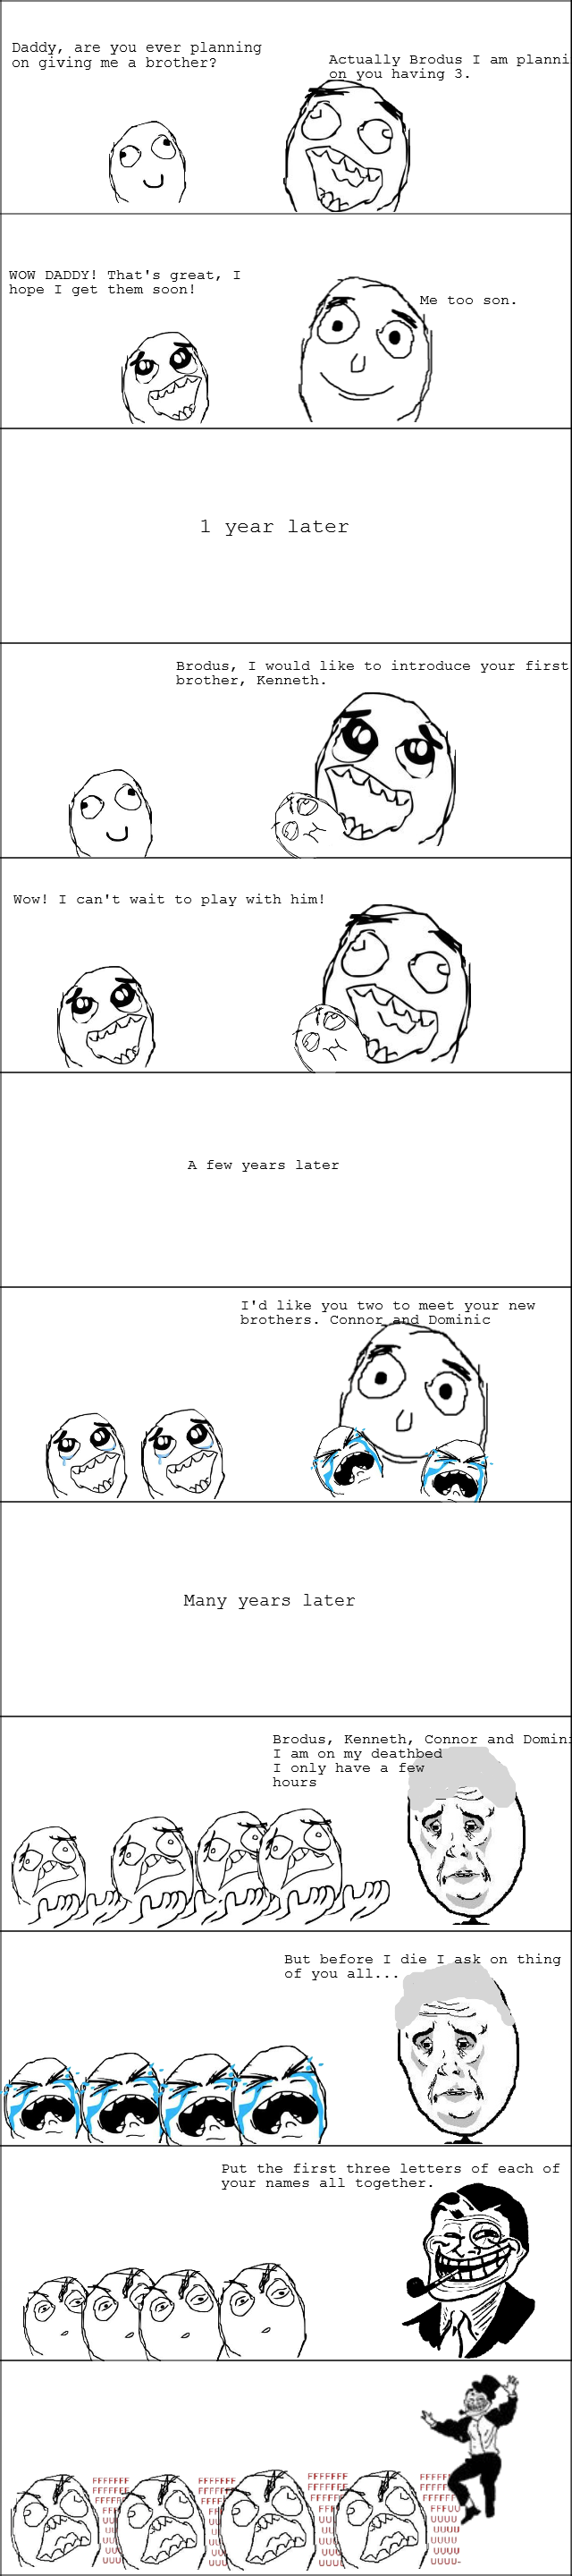 funny pictures auto rage comics troll dad